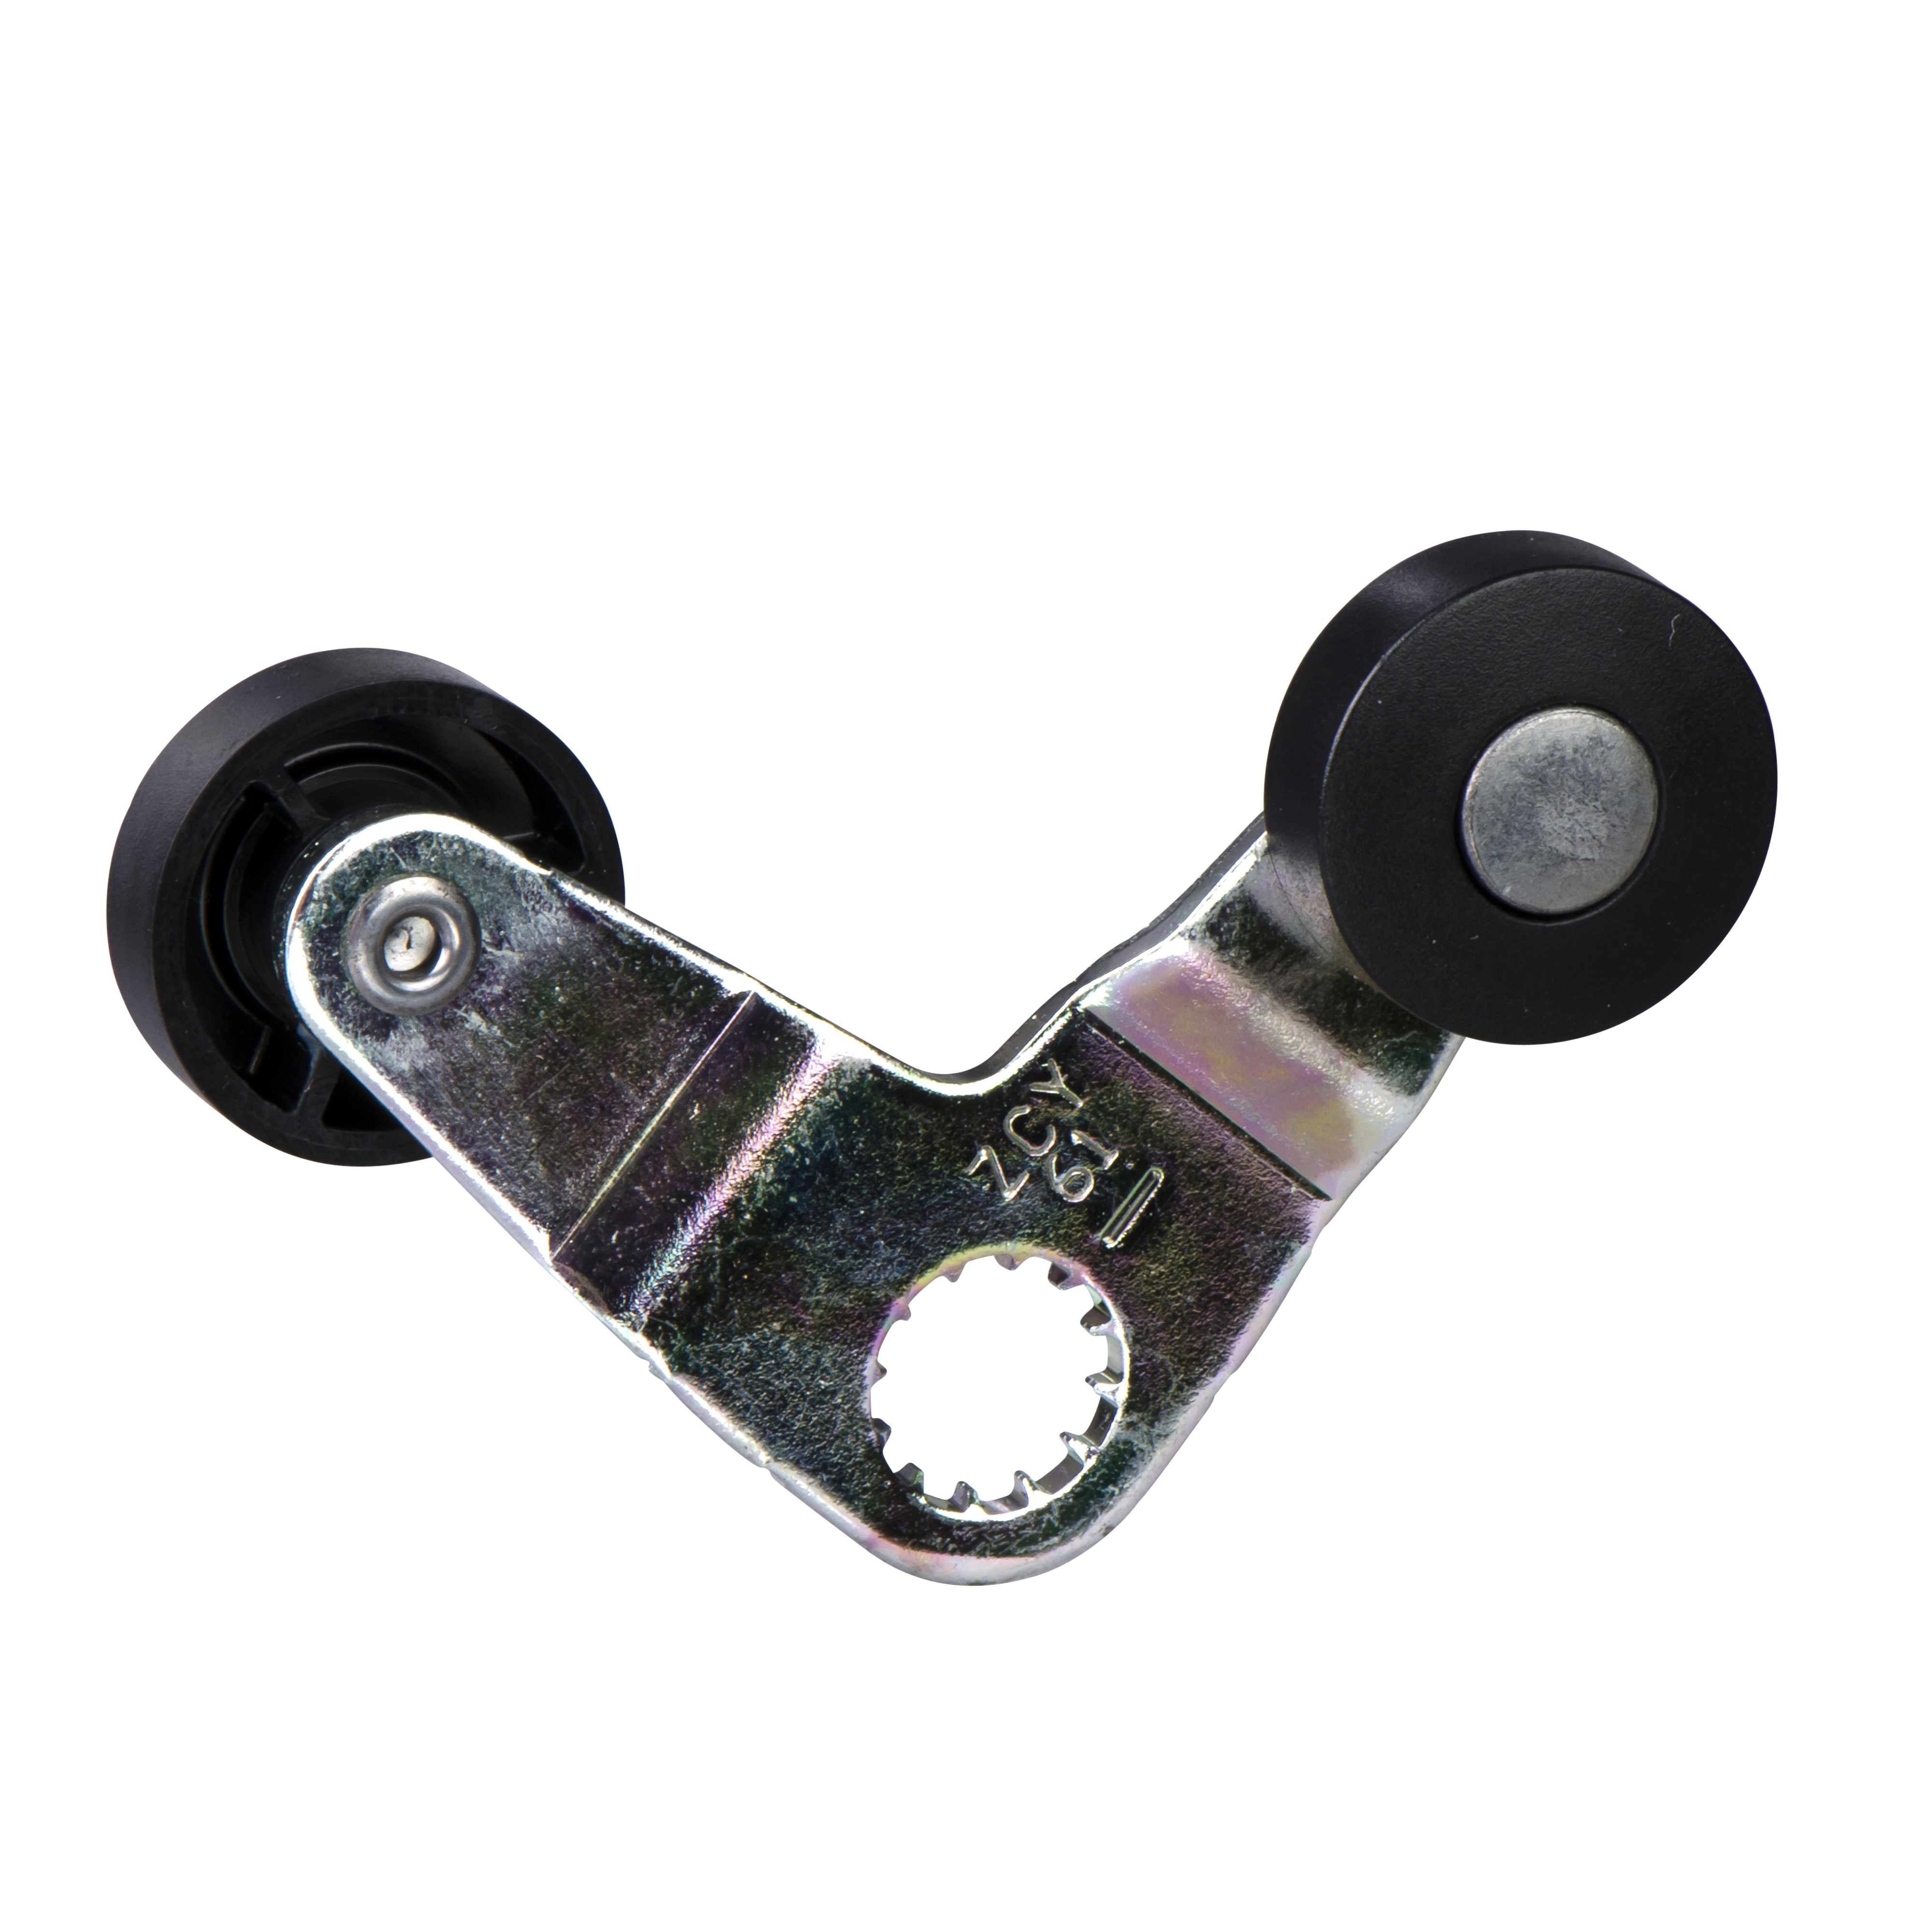 SQD ZCY61 LIMIT SWITCH LEVER ZCY - FORKED ARM